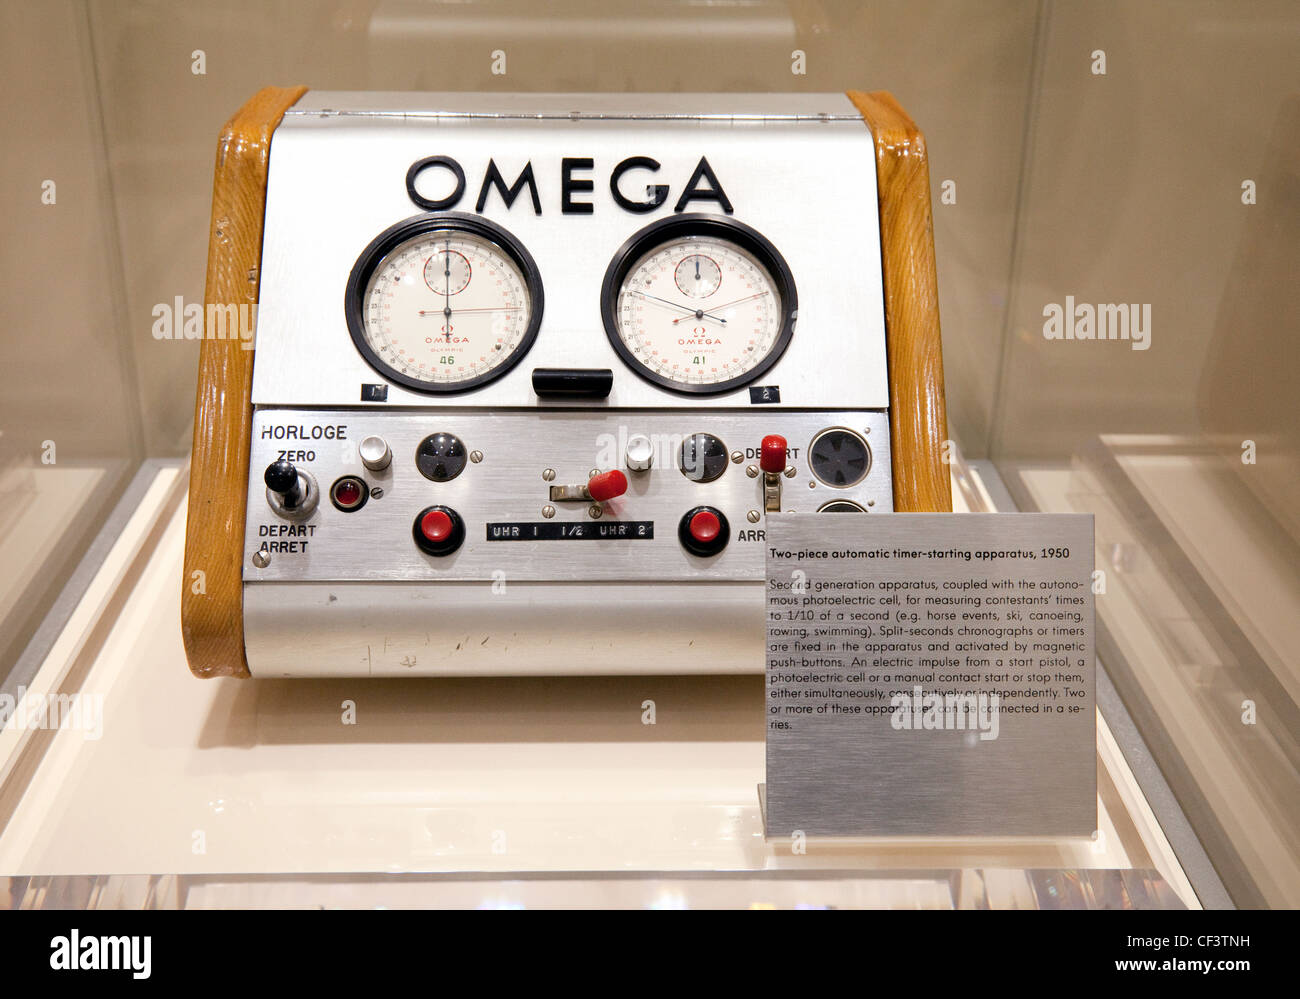 Omega two-piece automatic timer-starting apparatus, 1950, for olympic games event timing - Stock Image